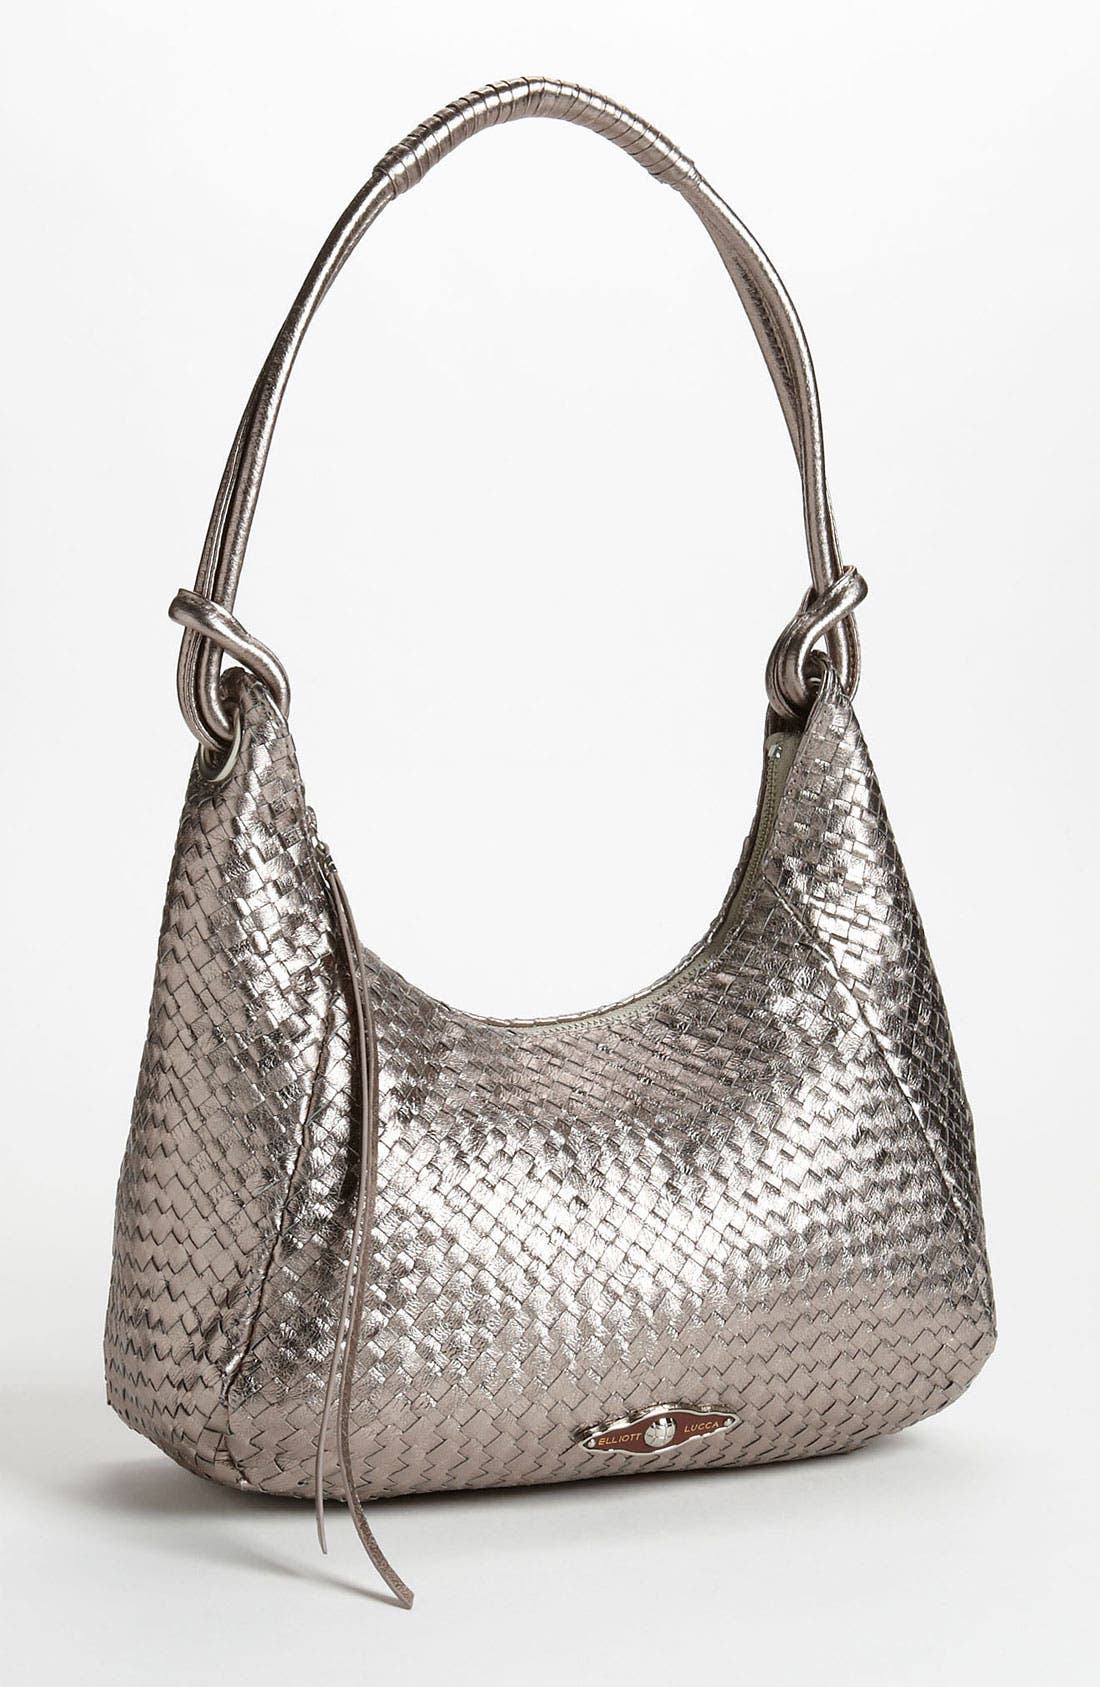 Alternate Image 1 Selected - Elliott Lucca 'Small' Leather Hobo